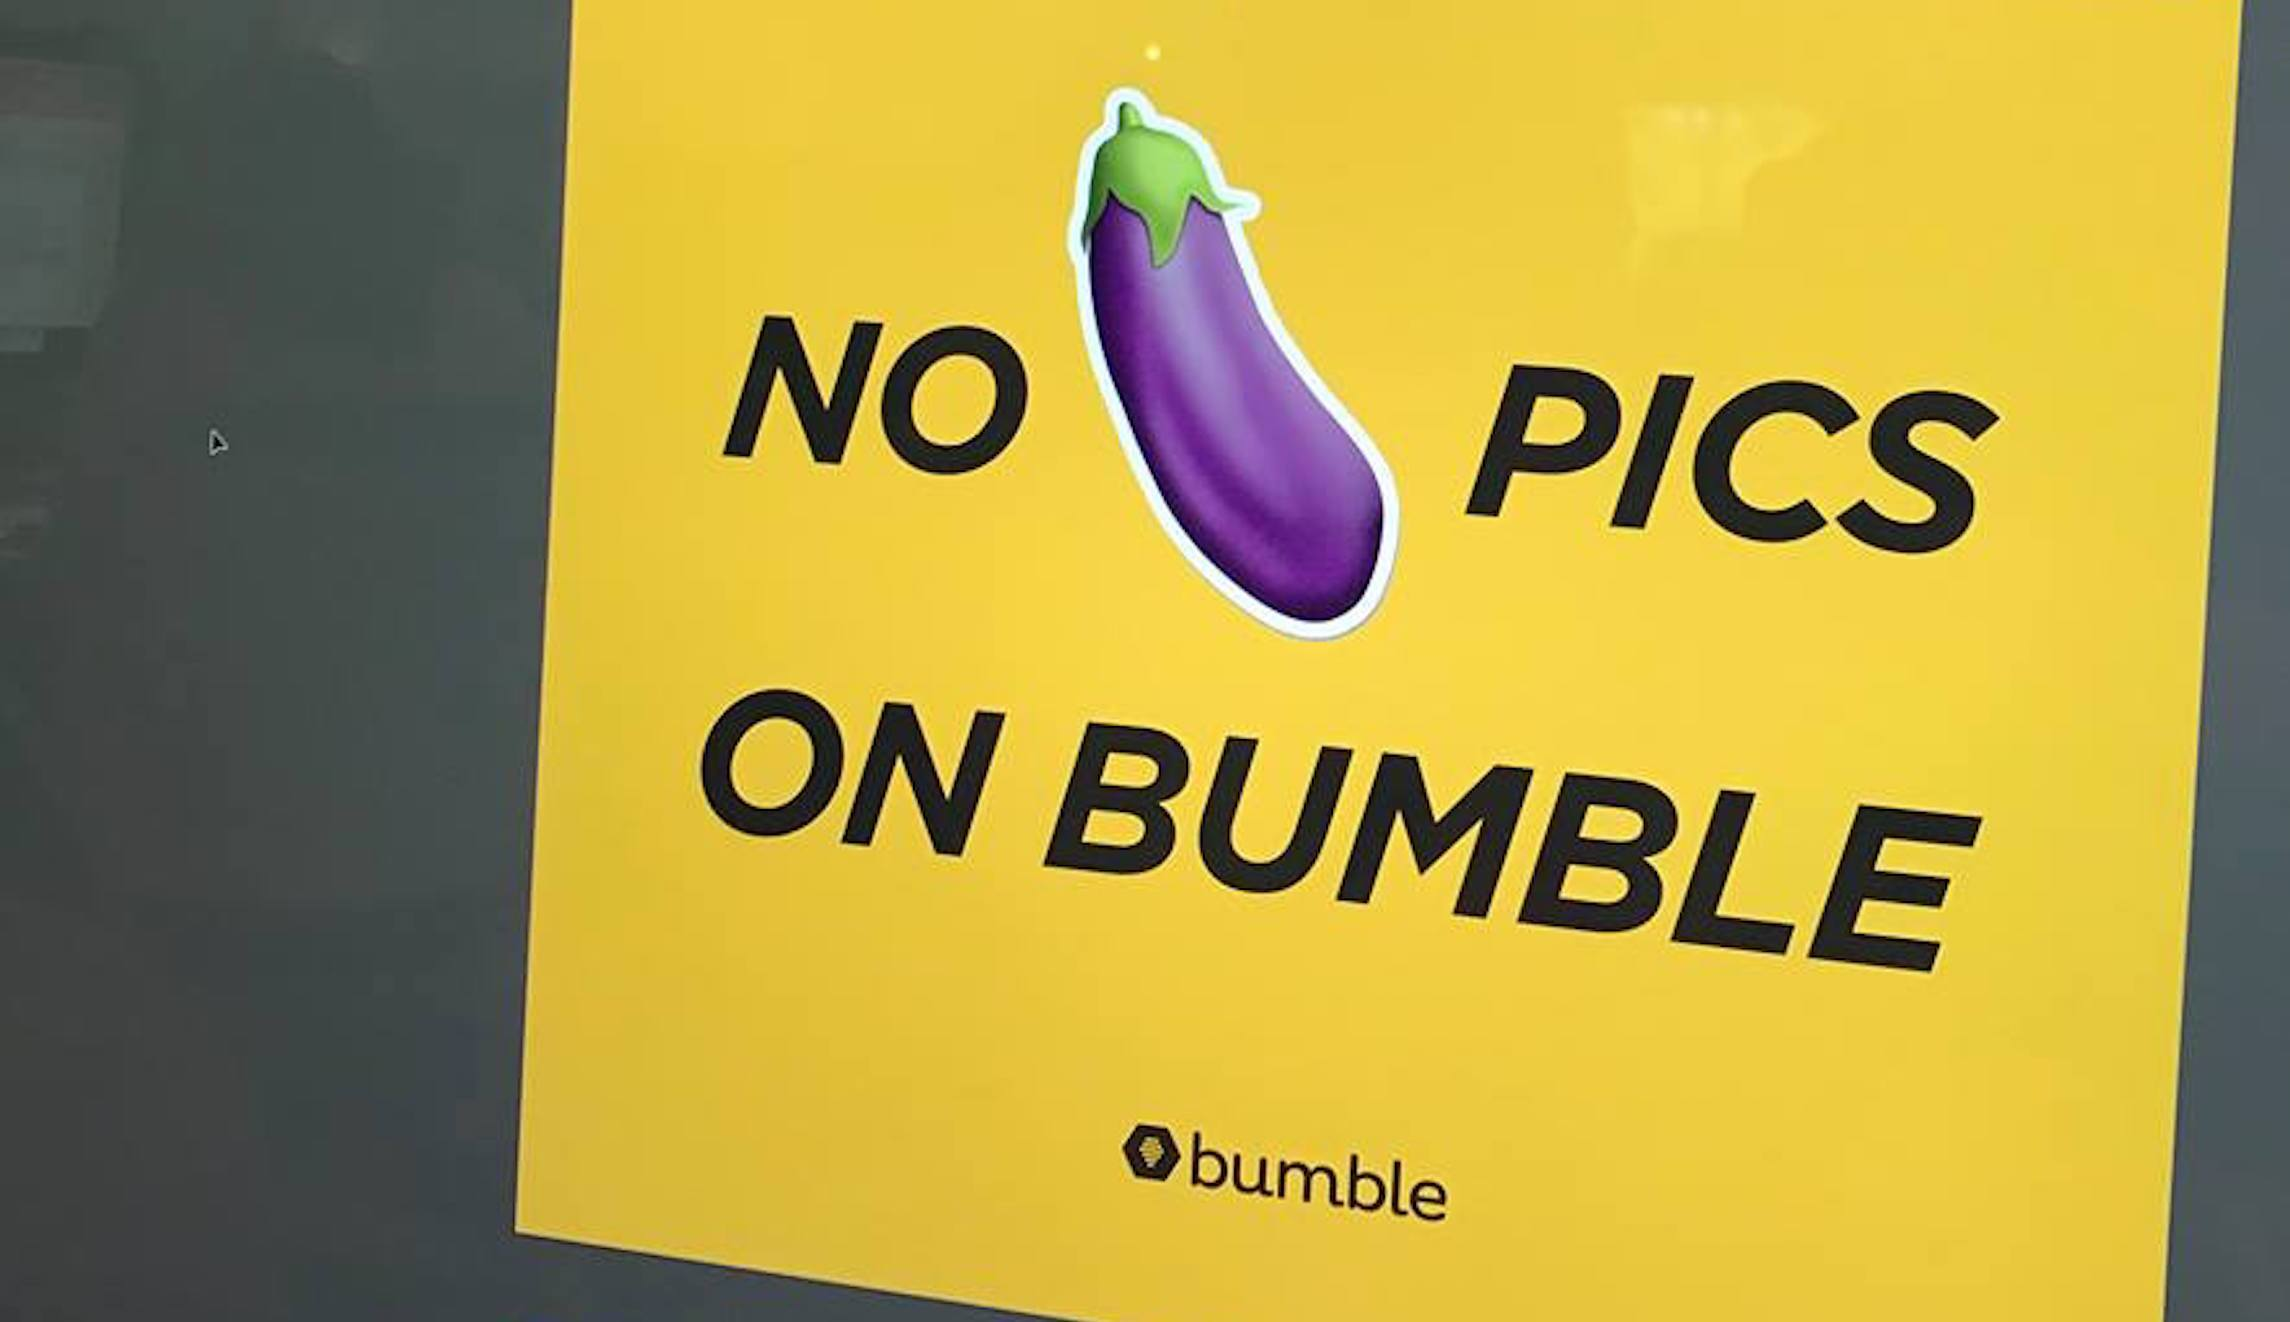 When dating apps like Bumble ban gun pictures, they're